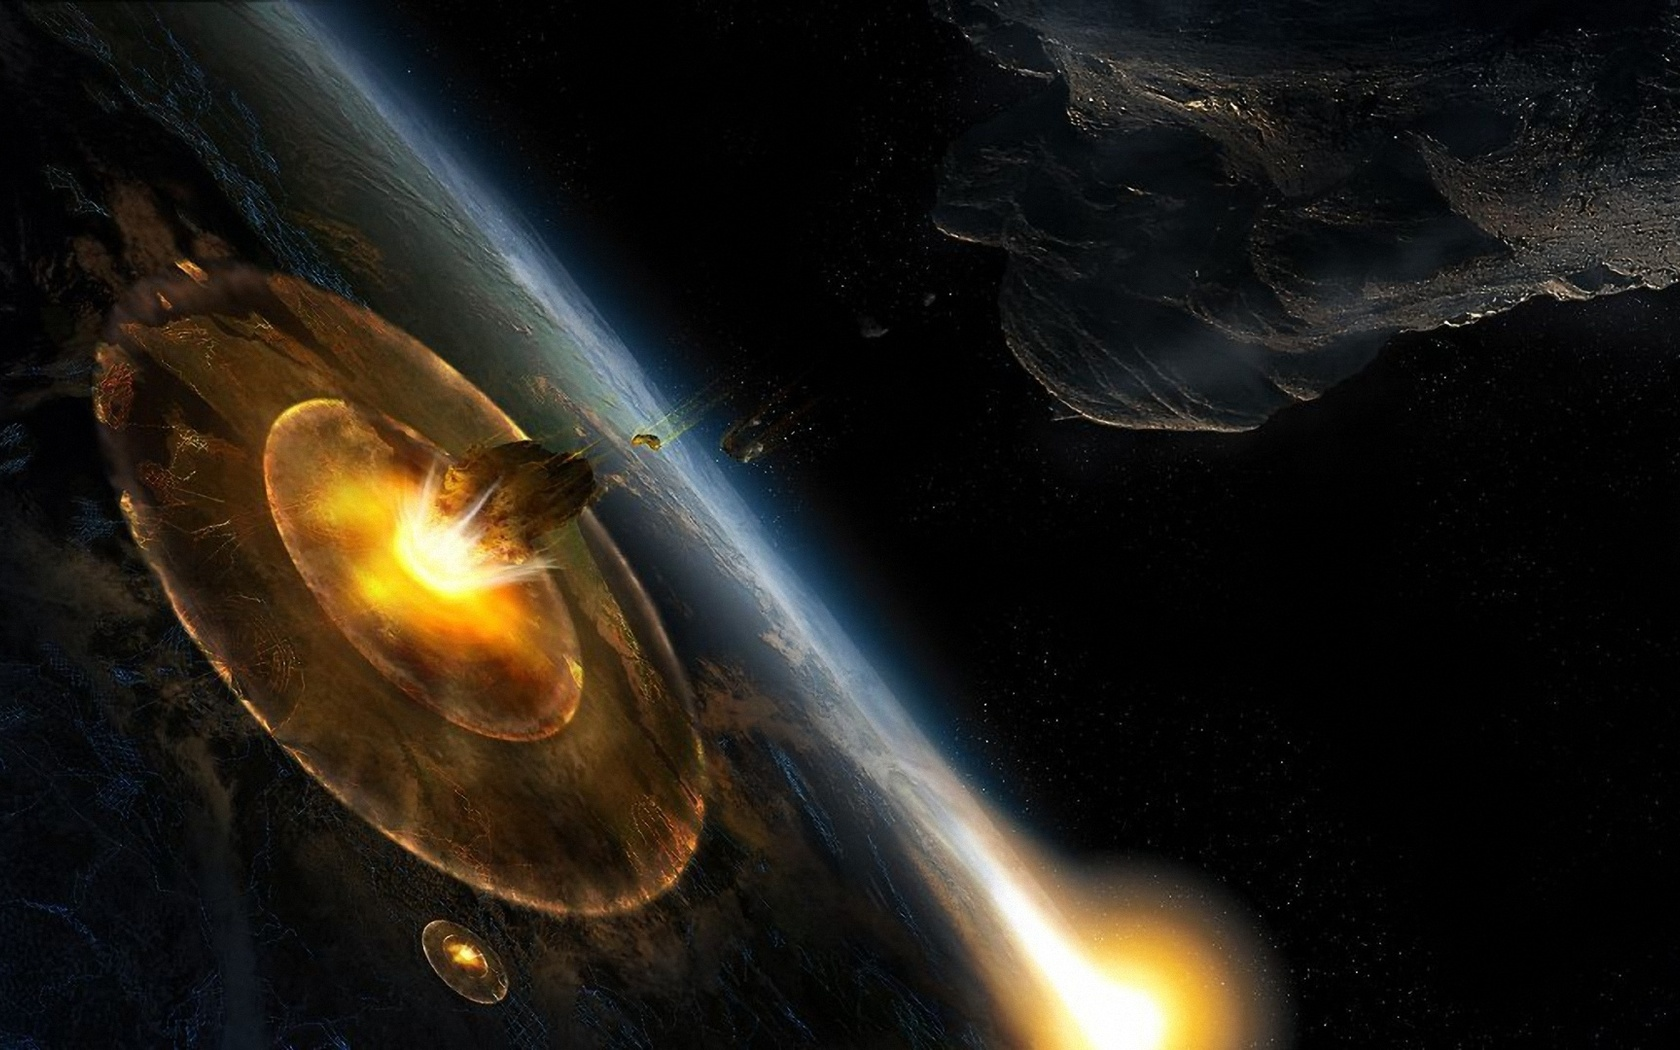 1680x1050 - Asteroid Wallpapers 31